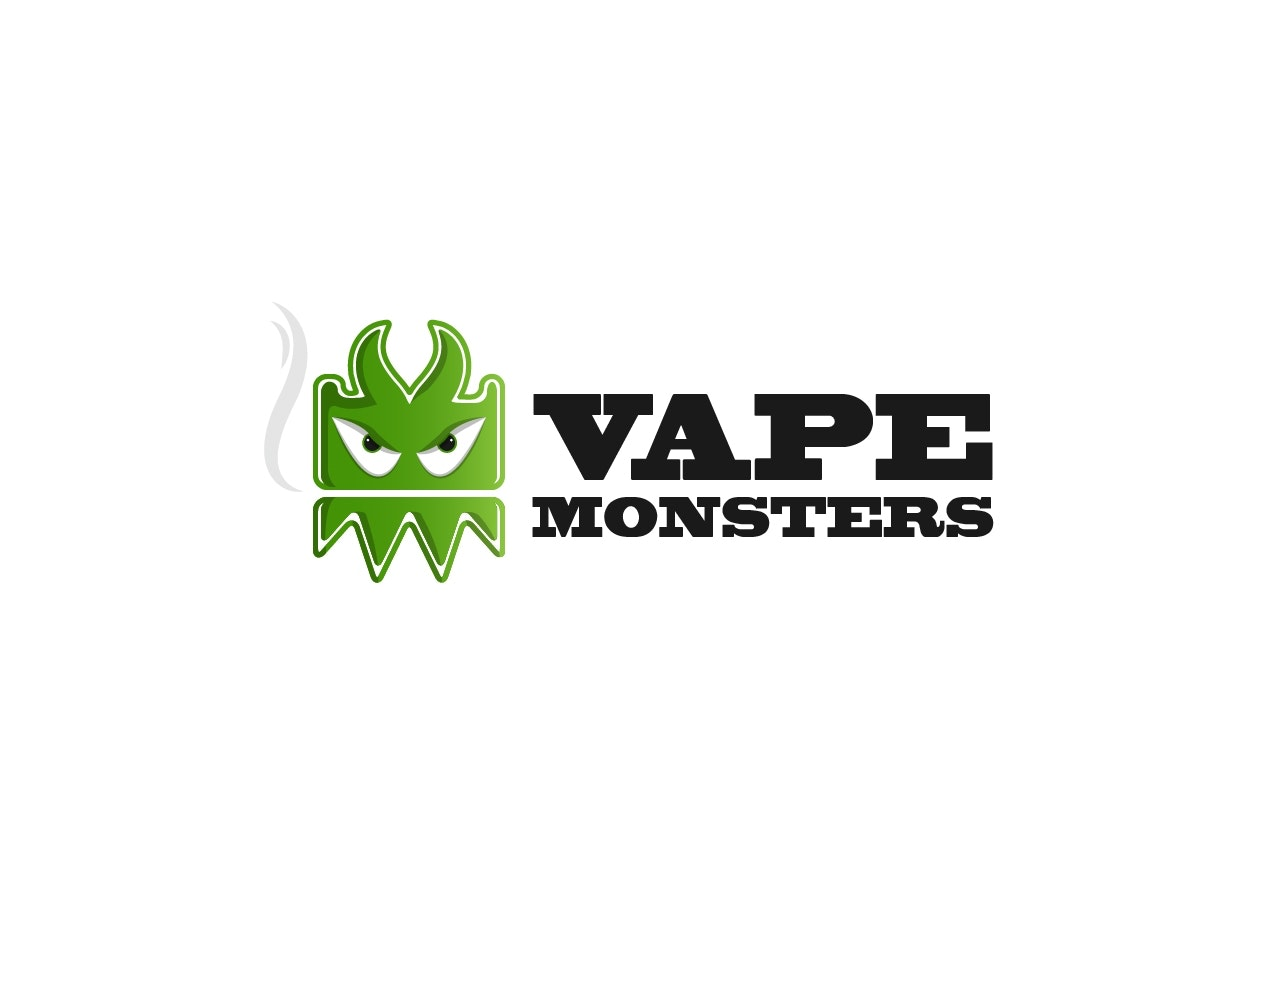 26 vape monsters